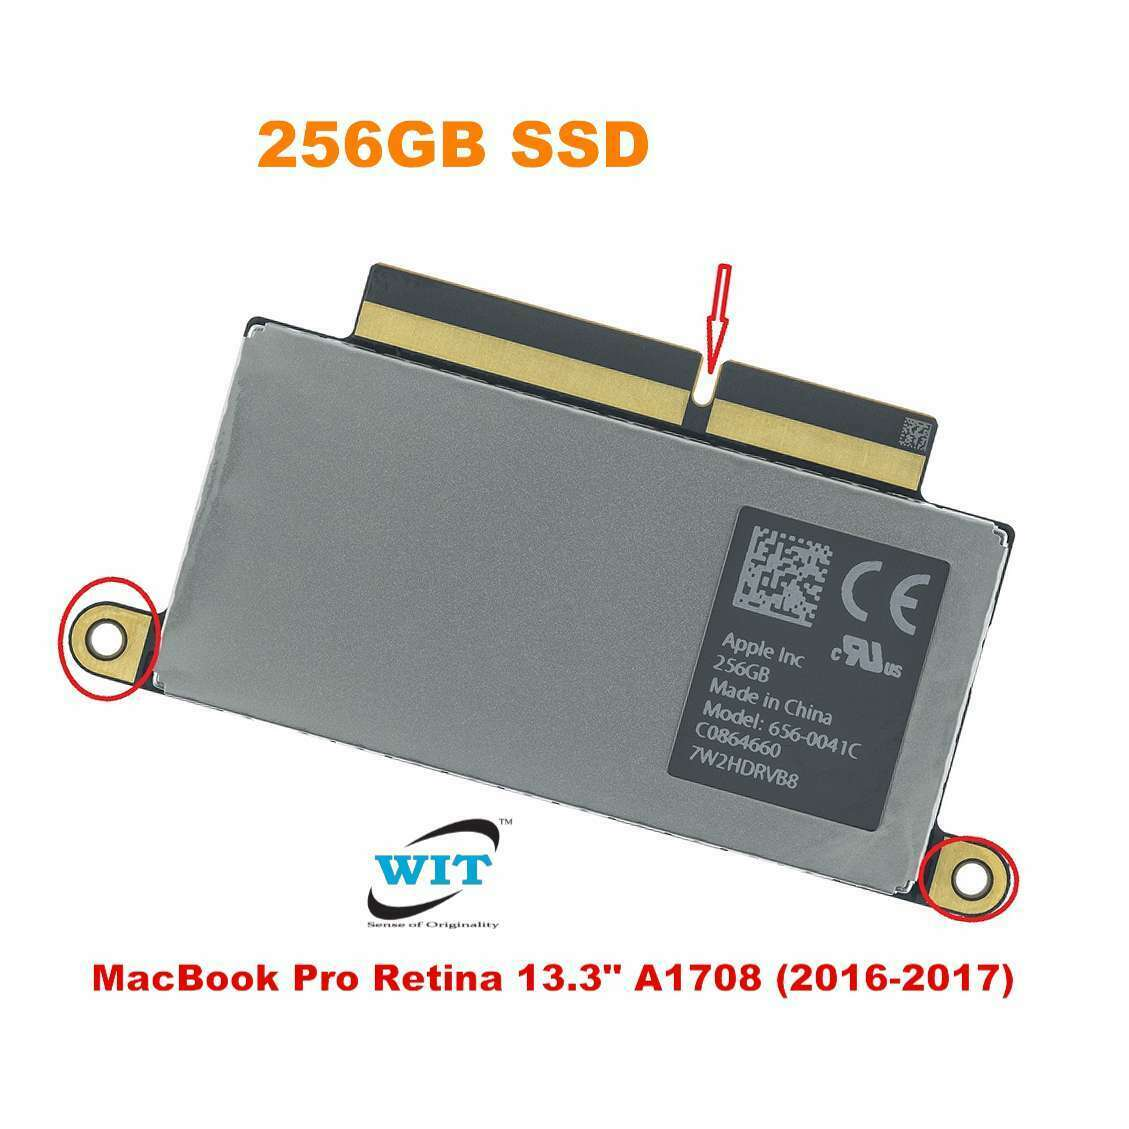 256GB Solid State Drive SSD 656-0076B for 2017 MacBook Pro A1708. Buy it now for 60.00